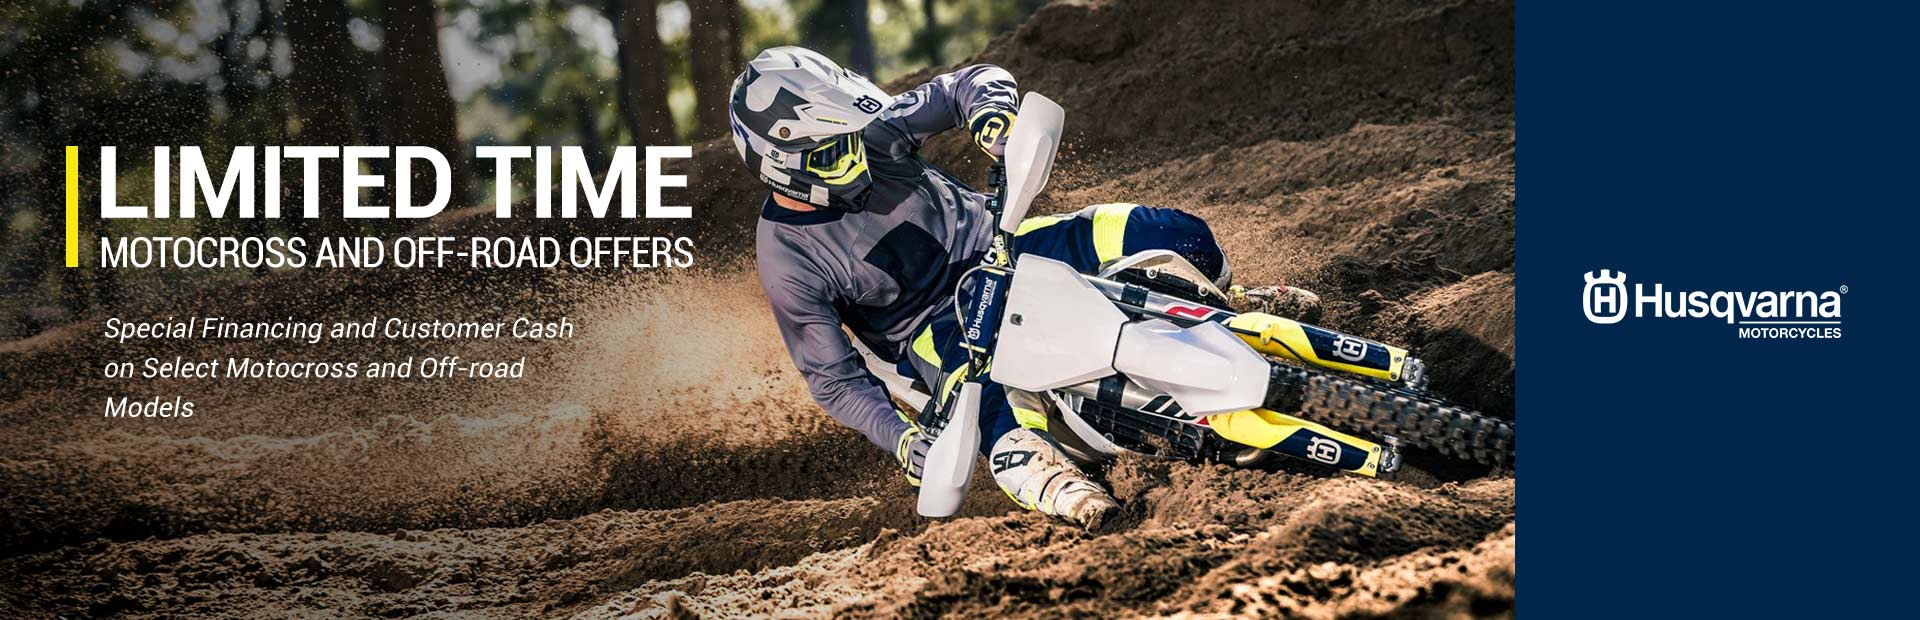 Husqvarna Motorcycles: Limited Time Motocross and Off-Road Offers